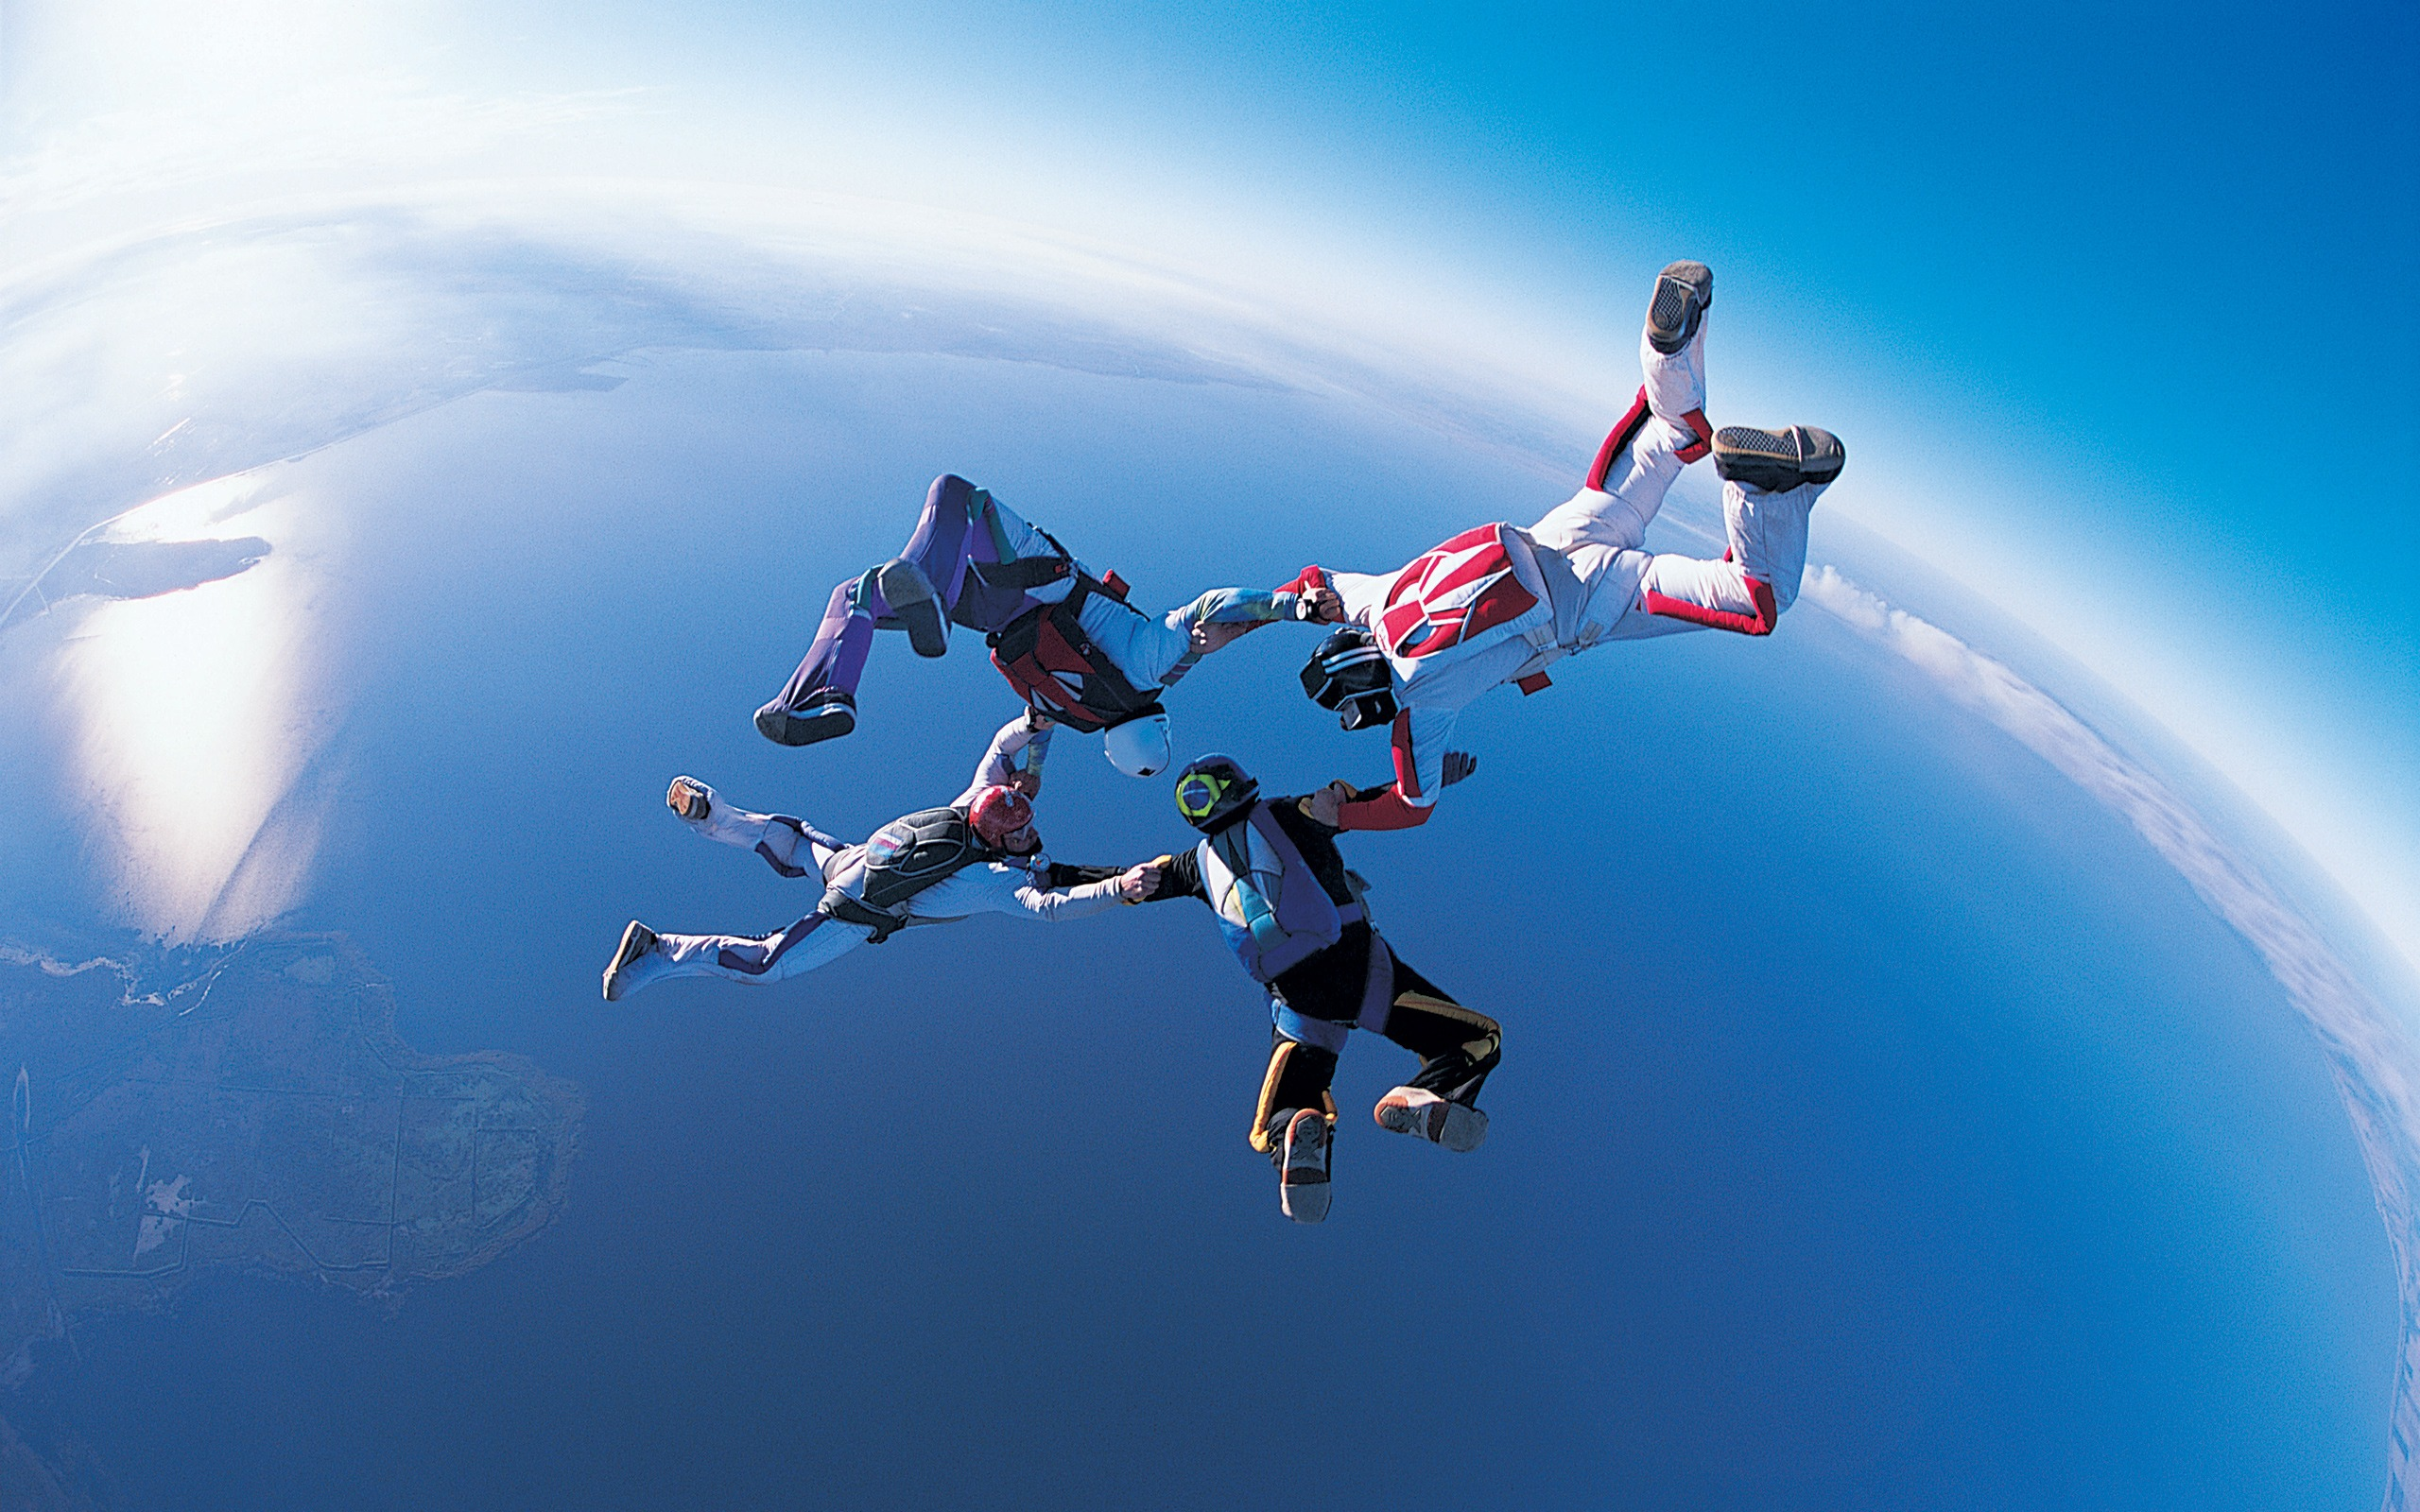 Sport Wallpaper Life: High-altitude Parachute Style-Life Is The Challenge